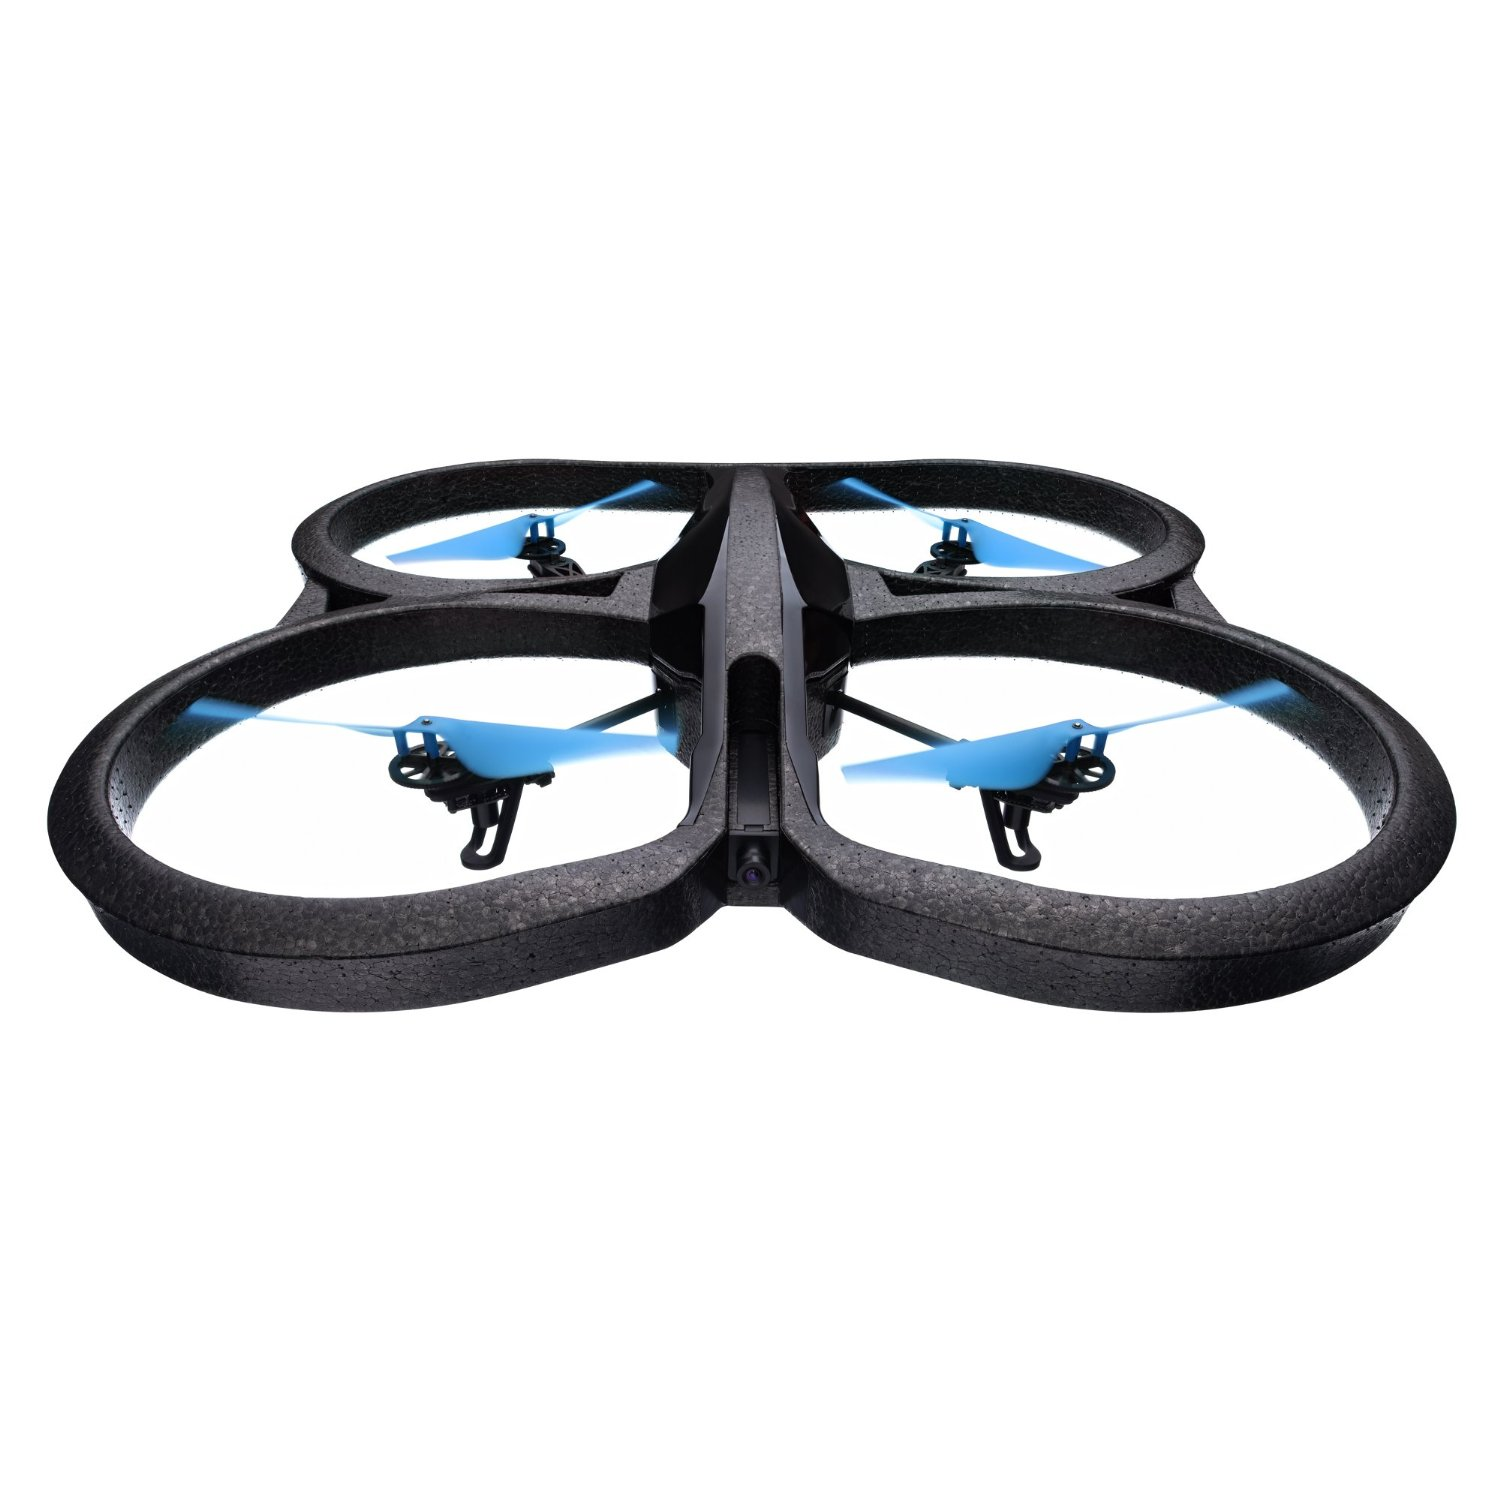 ar drone 2 0 power with Flightable Drone In Japan on Parrot Ardrone 20 Elite Edition additionally Botas Swat Madrid 7779 further Bestpersonaldrones as well 1783541878 further Ar Drone Gps Edition Now Available.